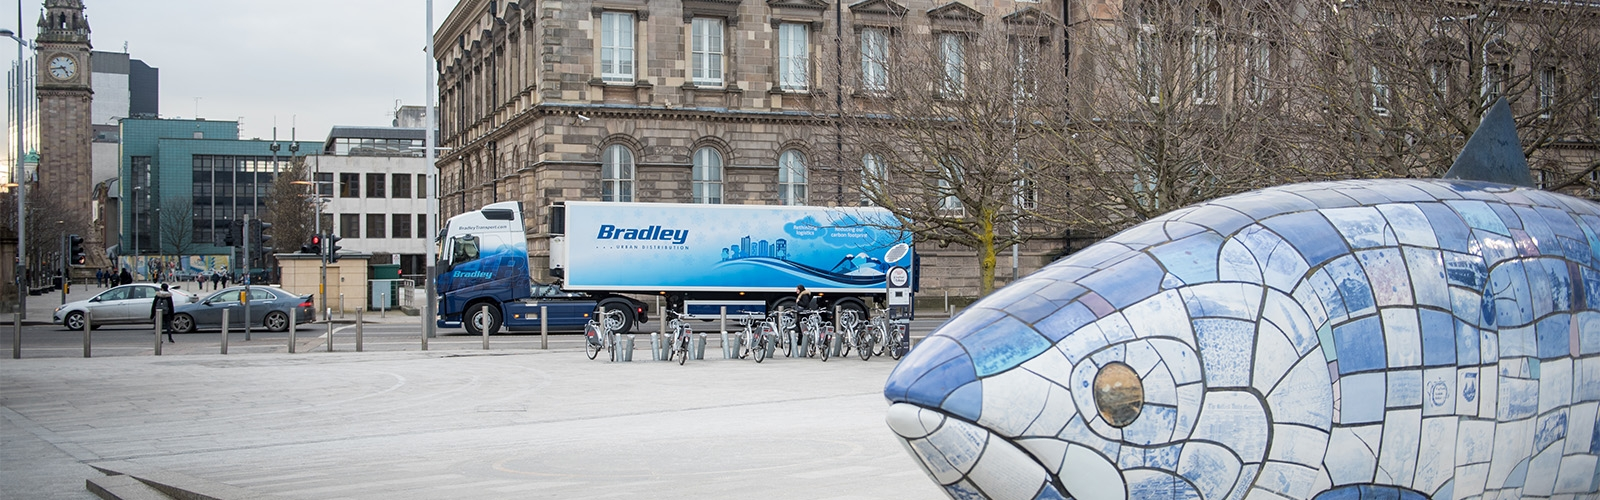 bradley-transport-urban-logistics-belfast-city